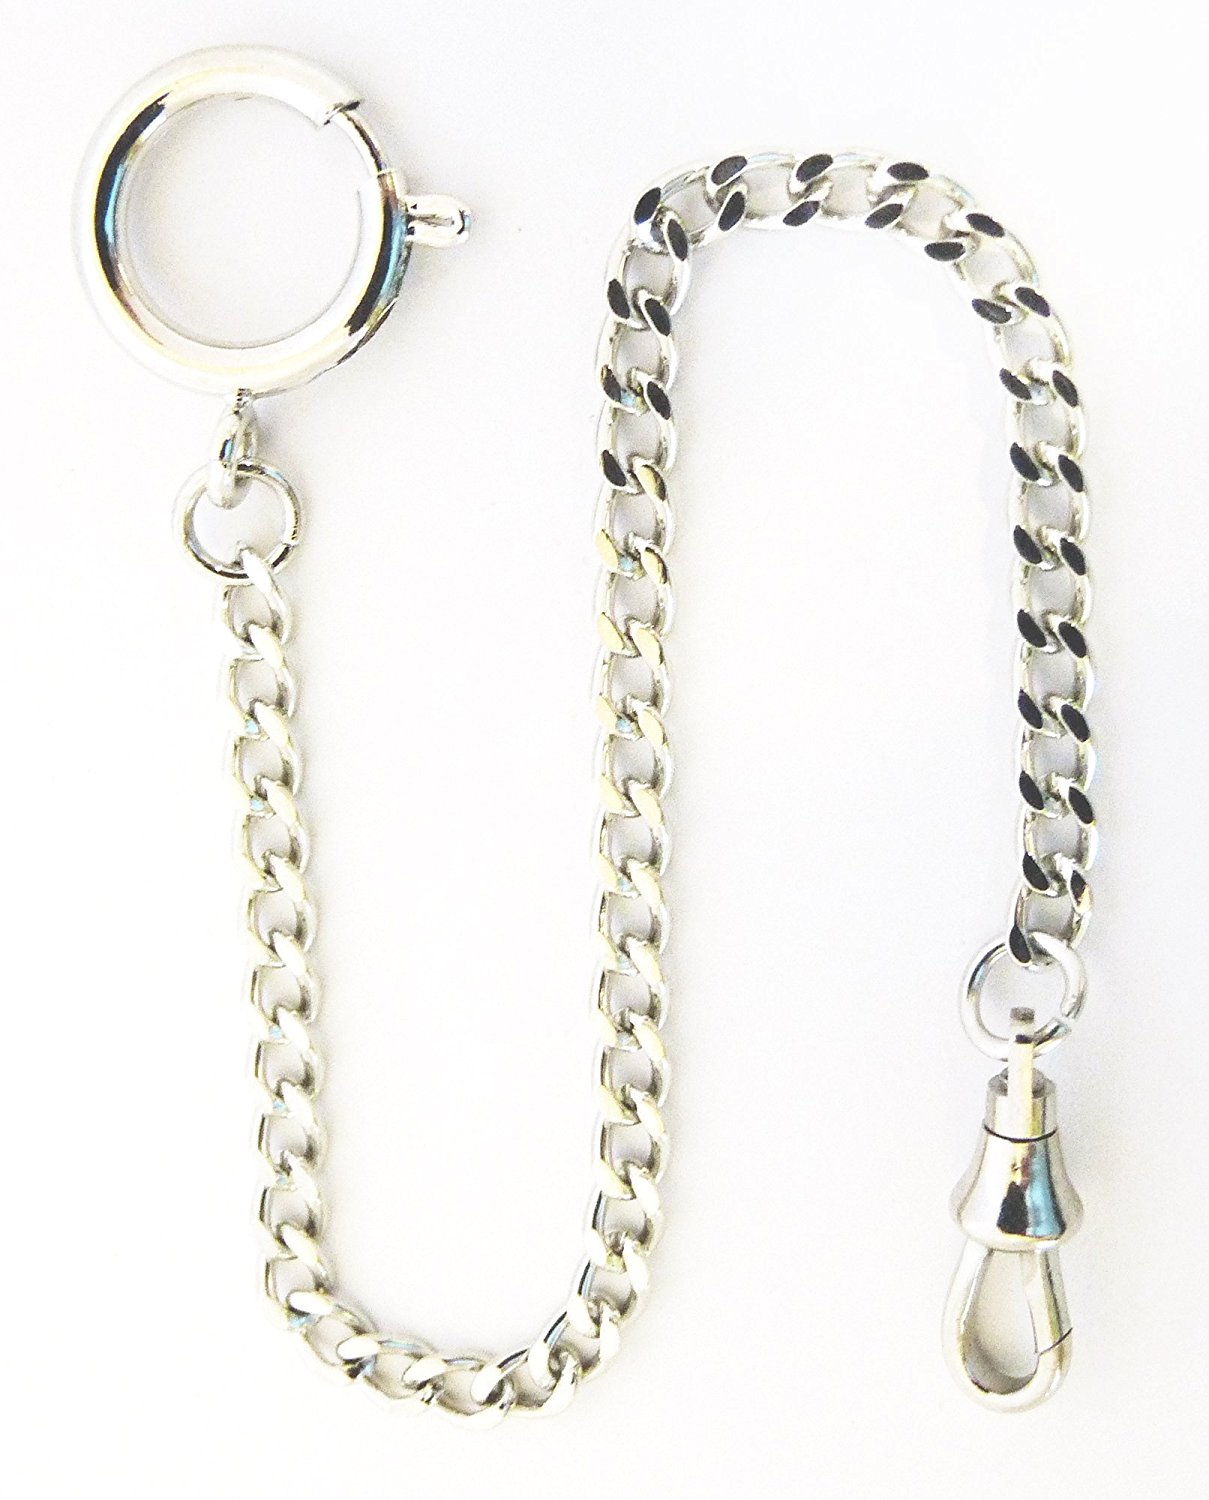 Dueber Chrome Plated Curb Pocket Watch Chain